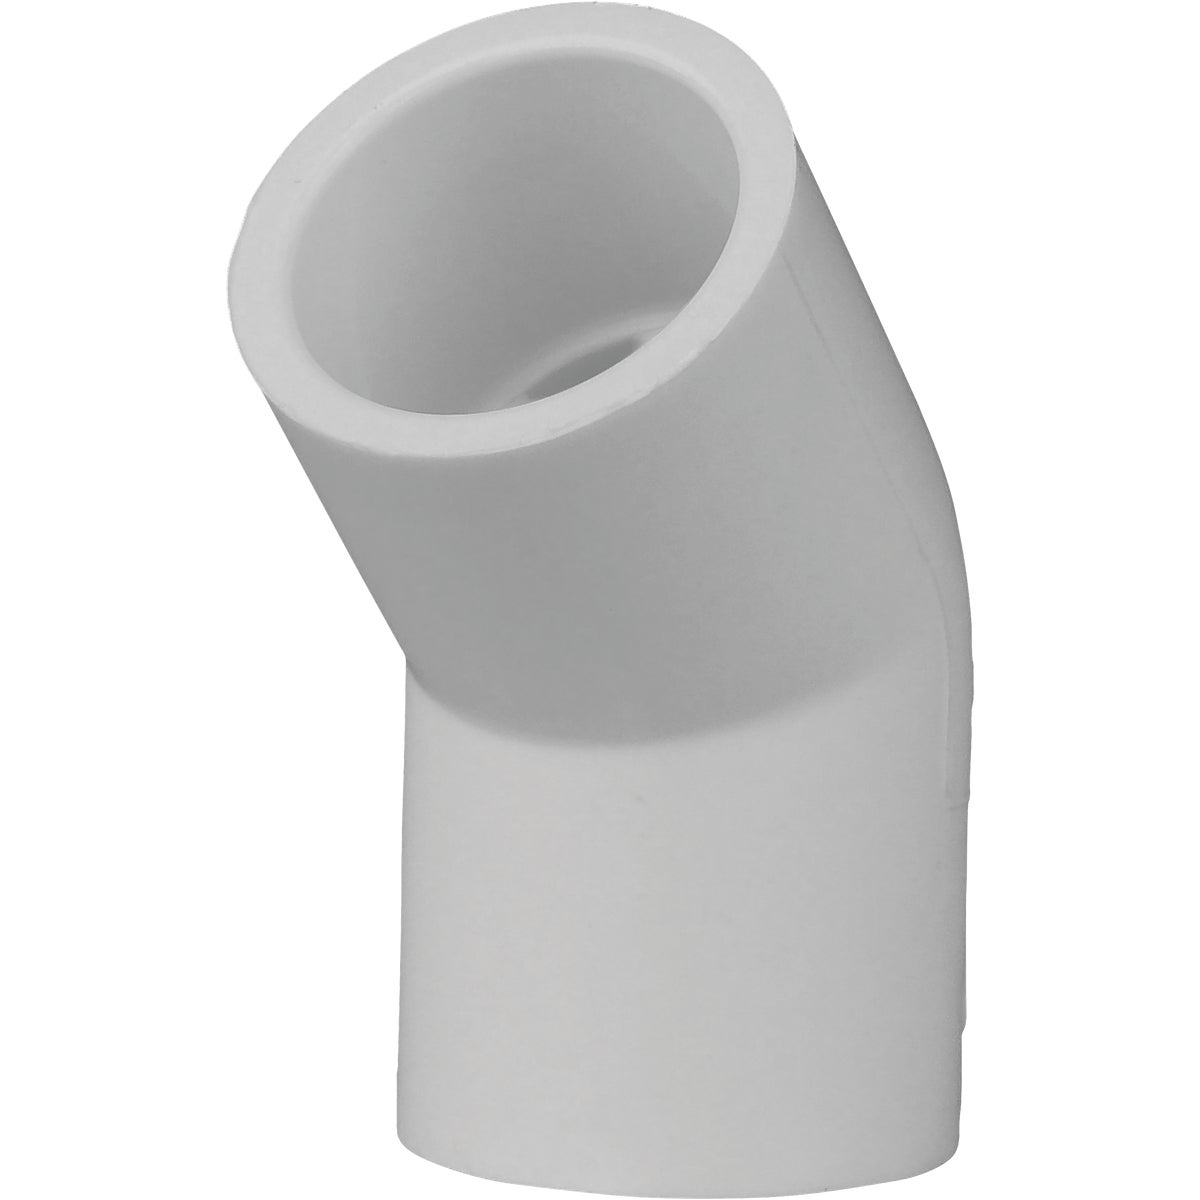 "1/2"" 45D SCH40 PVC ELBOW - 30605 by Genova Inc"